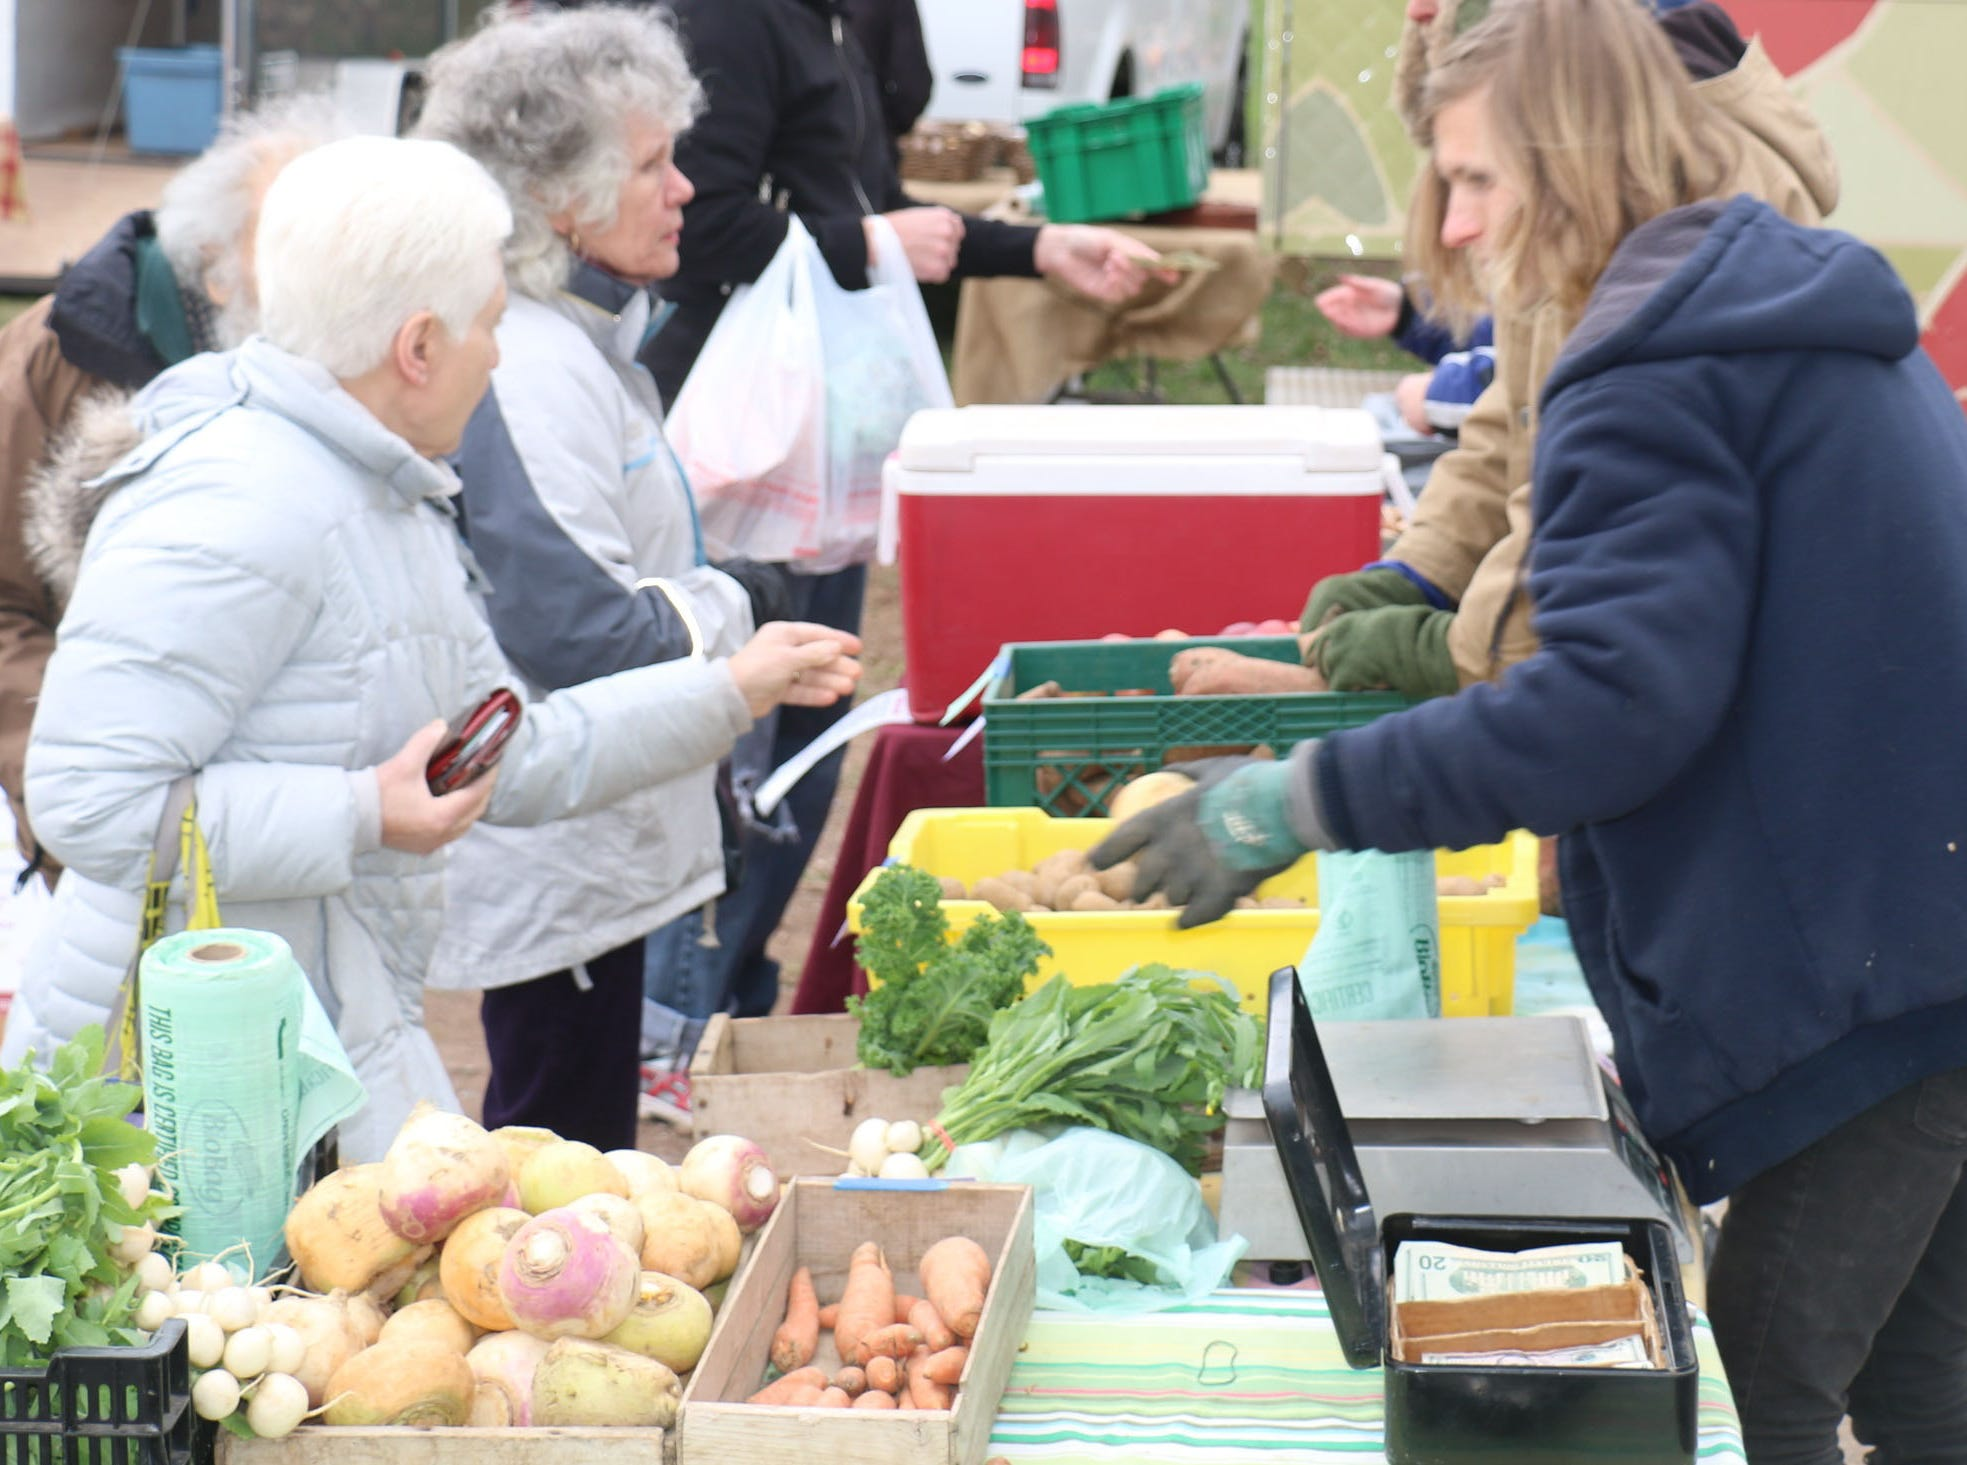 The Hunterdon Land Trust's winter Farmers' Market kicks off its sixth season on Sunday, Dec. 2, from 11 a.m. to 1 p.m. in the Dvoor Farm wagon house, 111 Mine St. in Flemington.